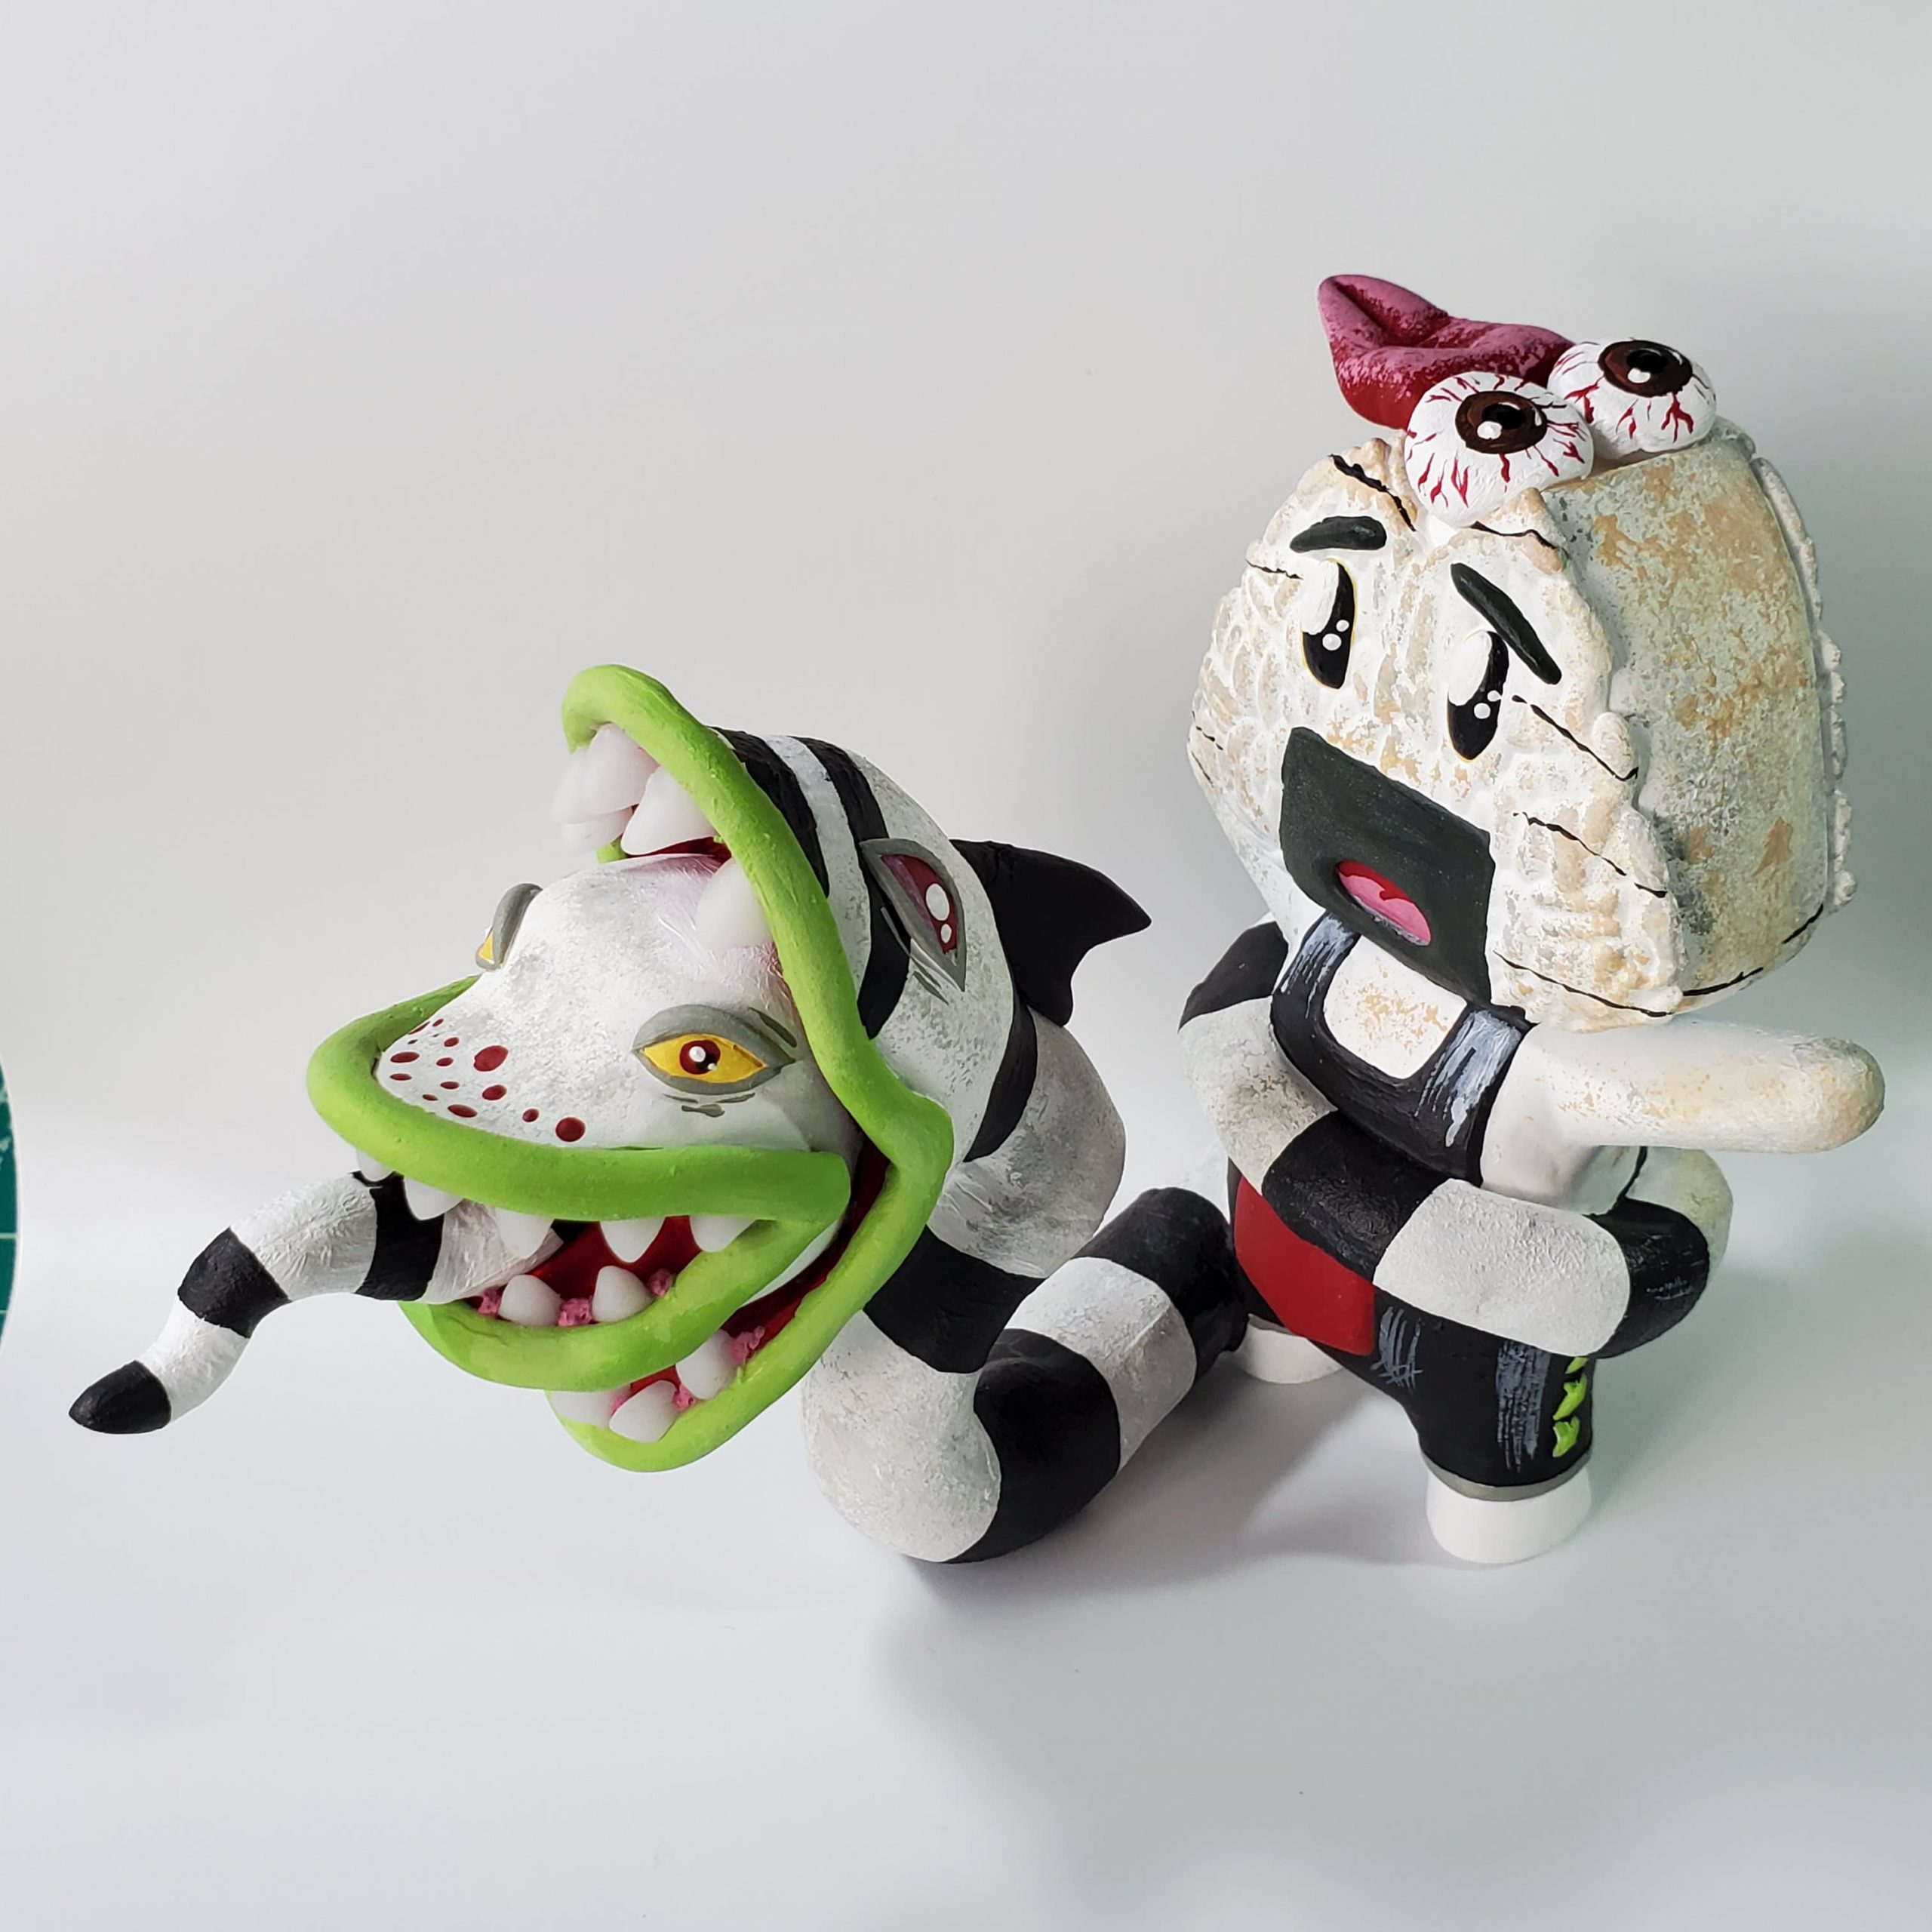 Haunted Onigiri Boi riding sandworm from Beetlejuice